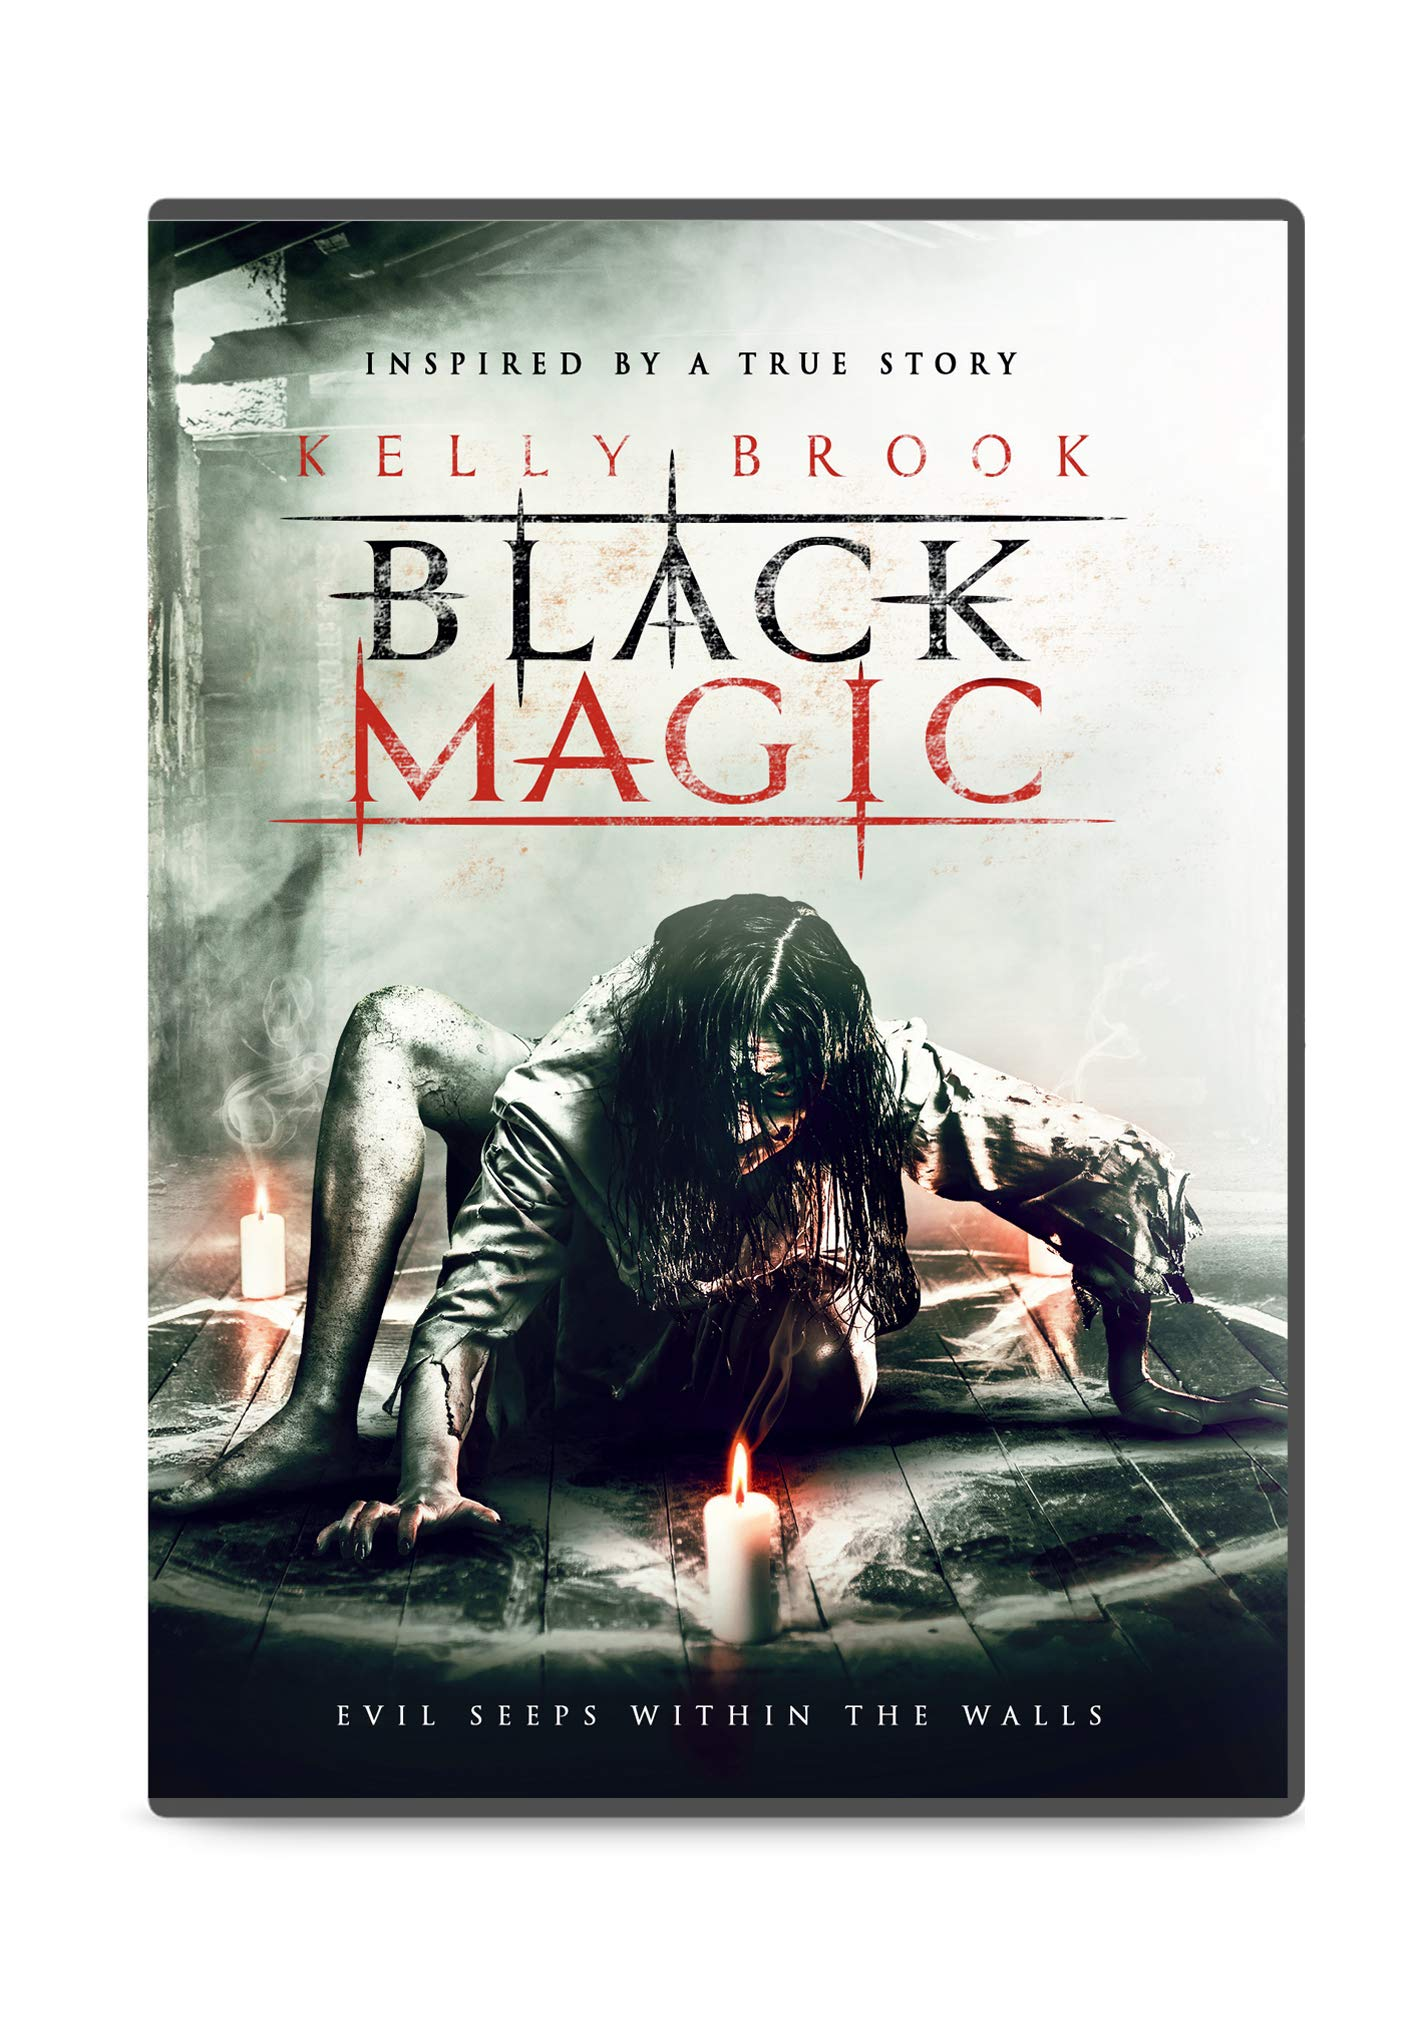 DVD : Black Magic (Widescreen, Subtitled, O-Card Packaging)